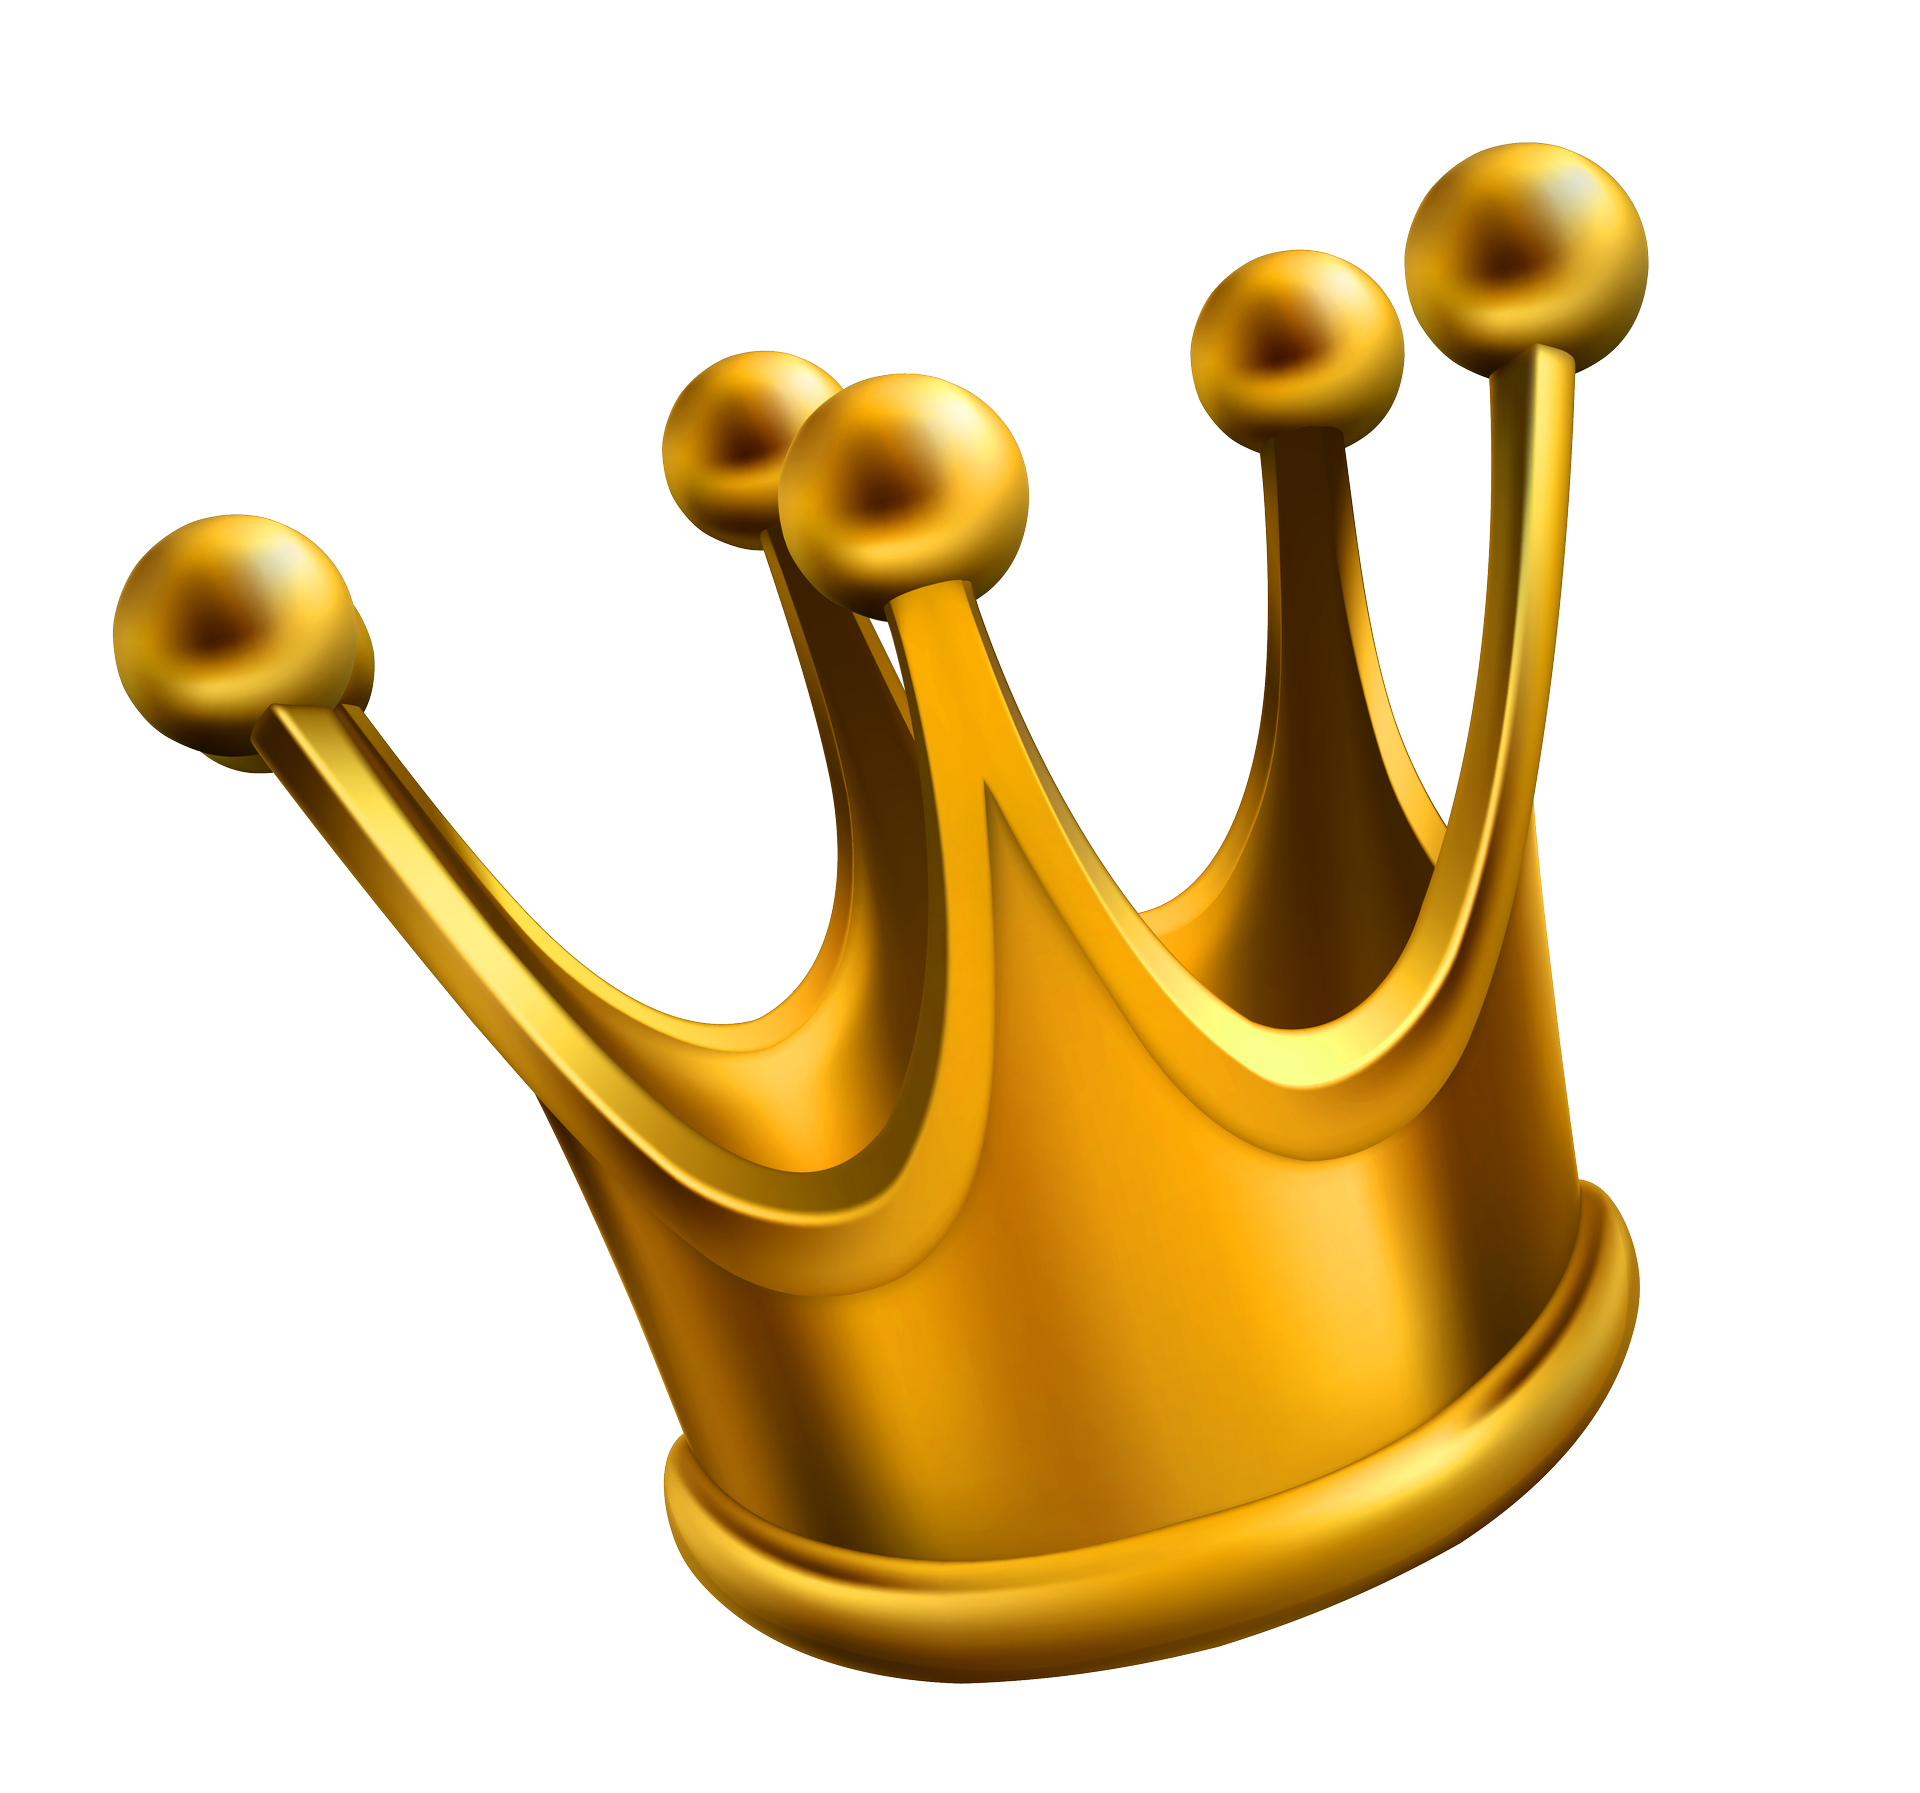 Small crown clipart image freeuse library Crown Clipart at GetDrawings.com | Free for personal use Crown ... image freeuse library